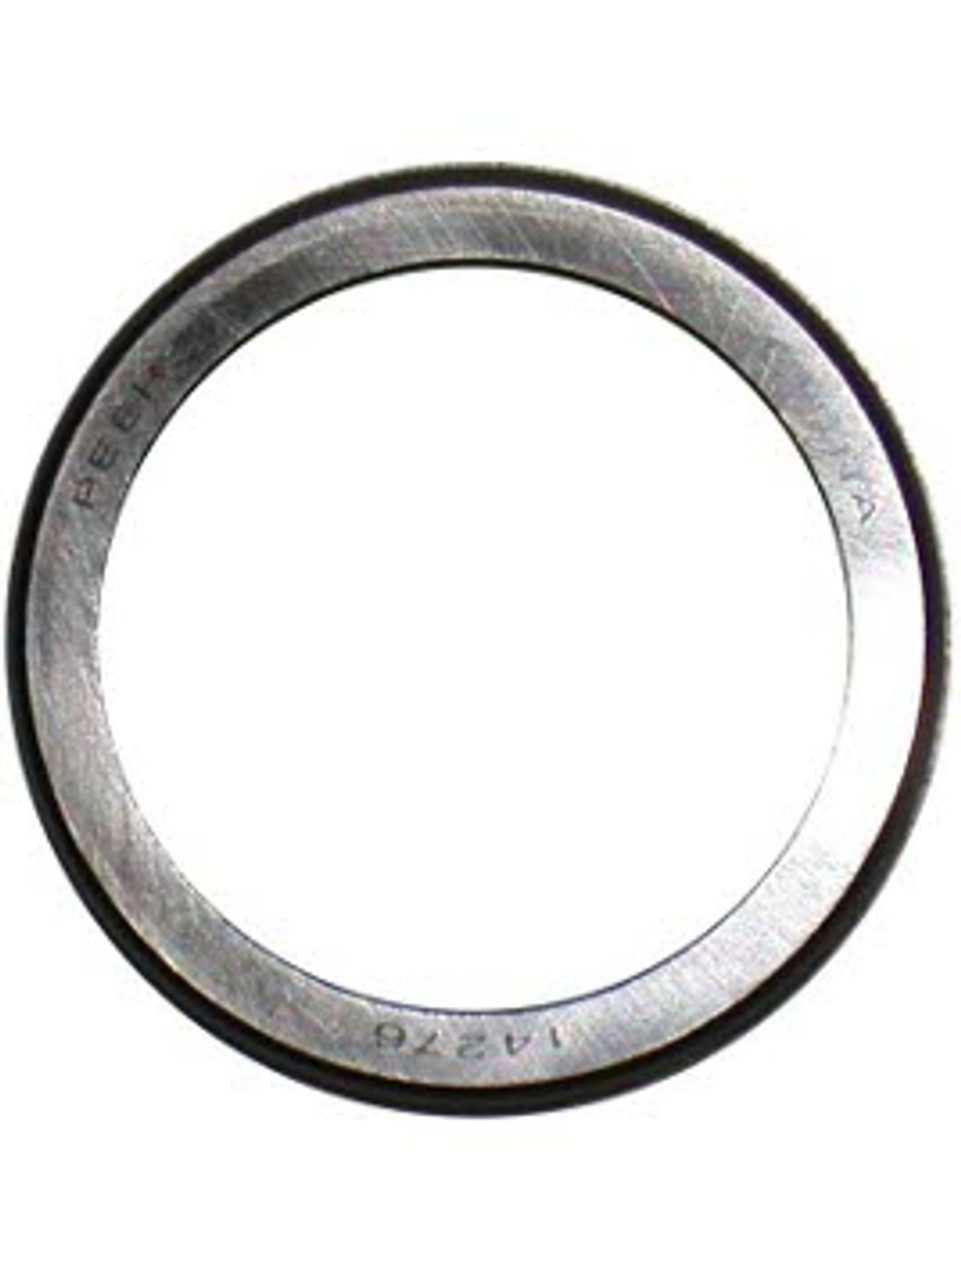 14276 --- Race (Cup) for Bearing # 14125A